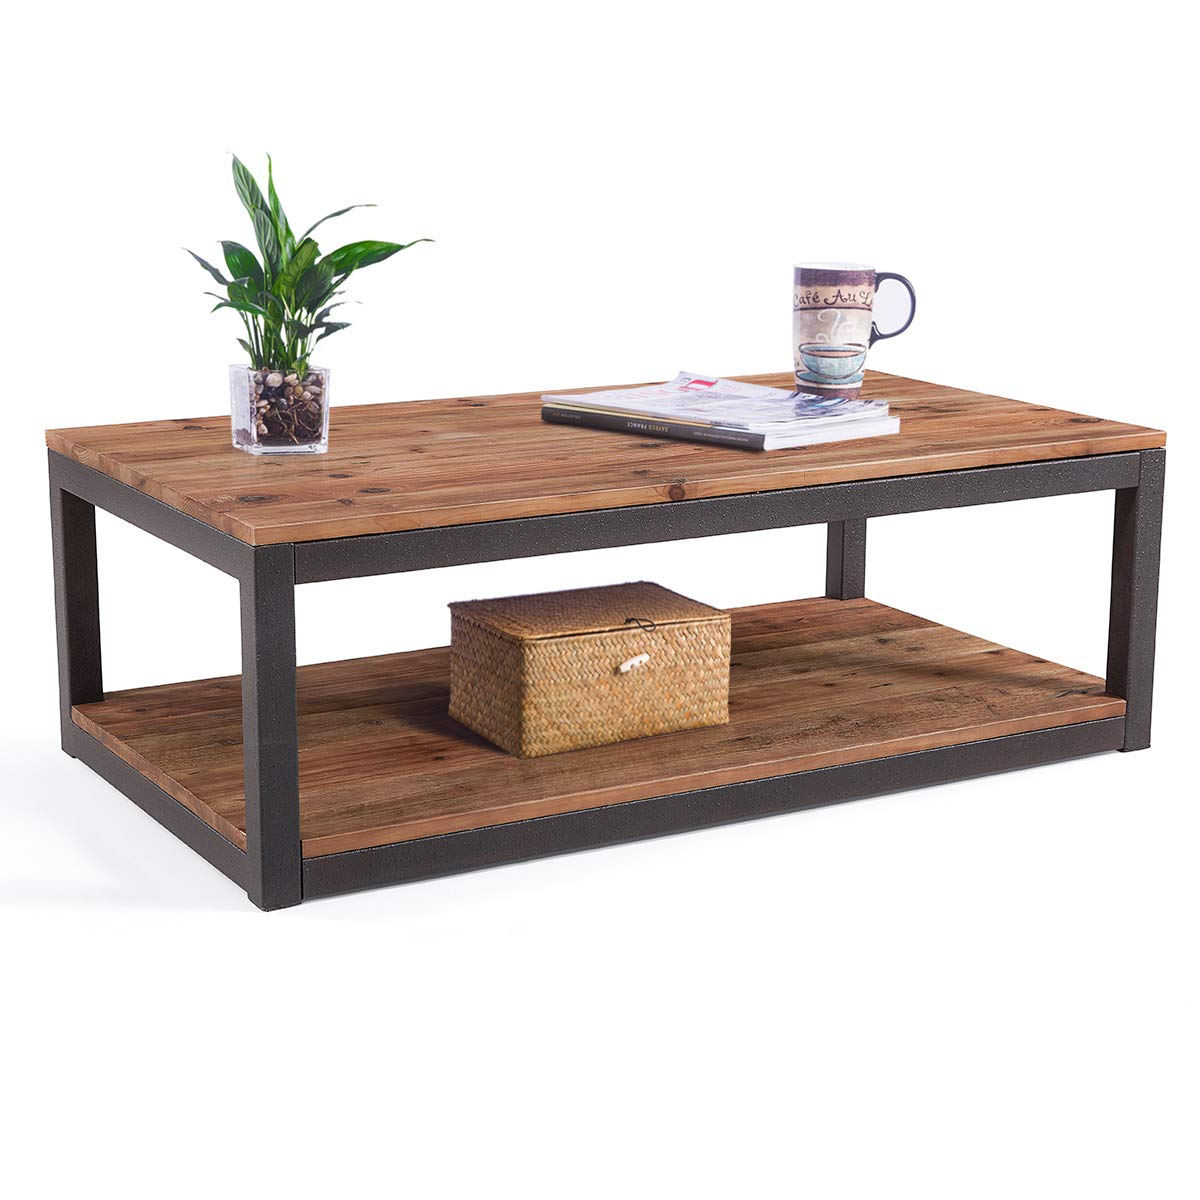 care royal vintage industrial farmhouse coffee rustic reclaimed wood accent tables table cocktail with storage open shelf for living room natural solid wine bar cabinet chrome